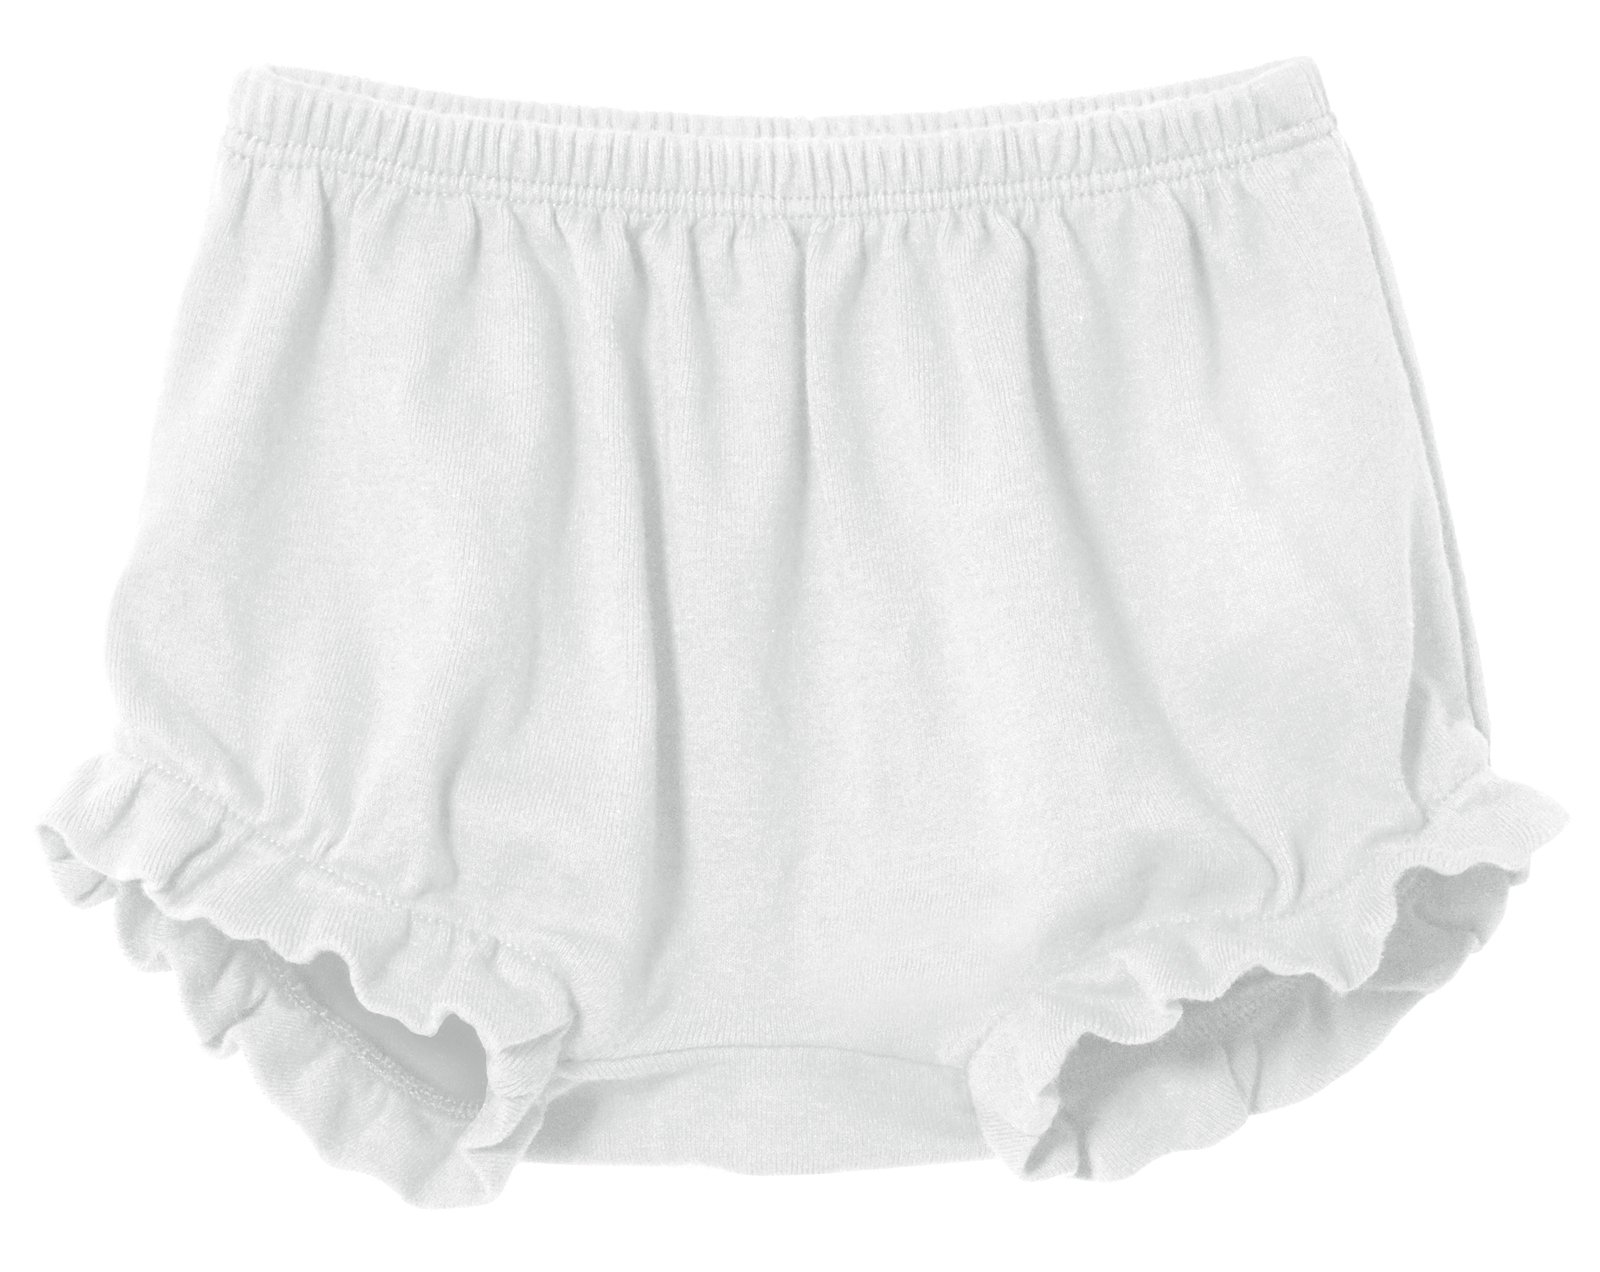 City Threads Baby Girls' and Boys' Ruffled Diaper Covers Bloomers Soft Cotton Fashionable Cute, White, 18-24Months by City Threads